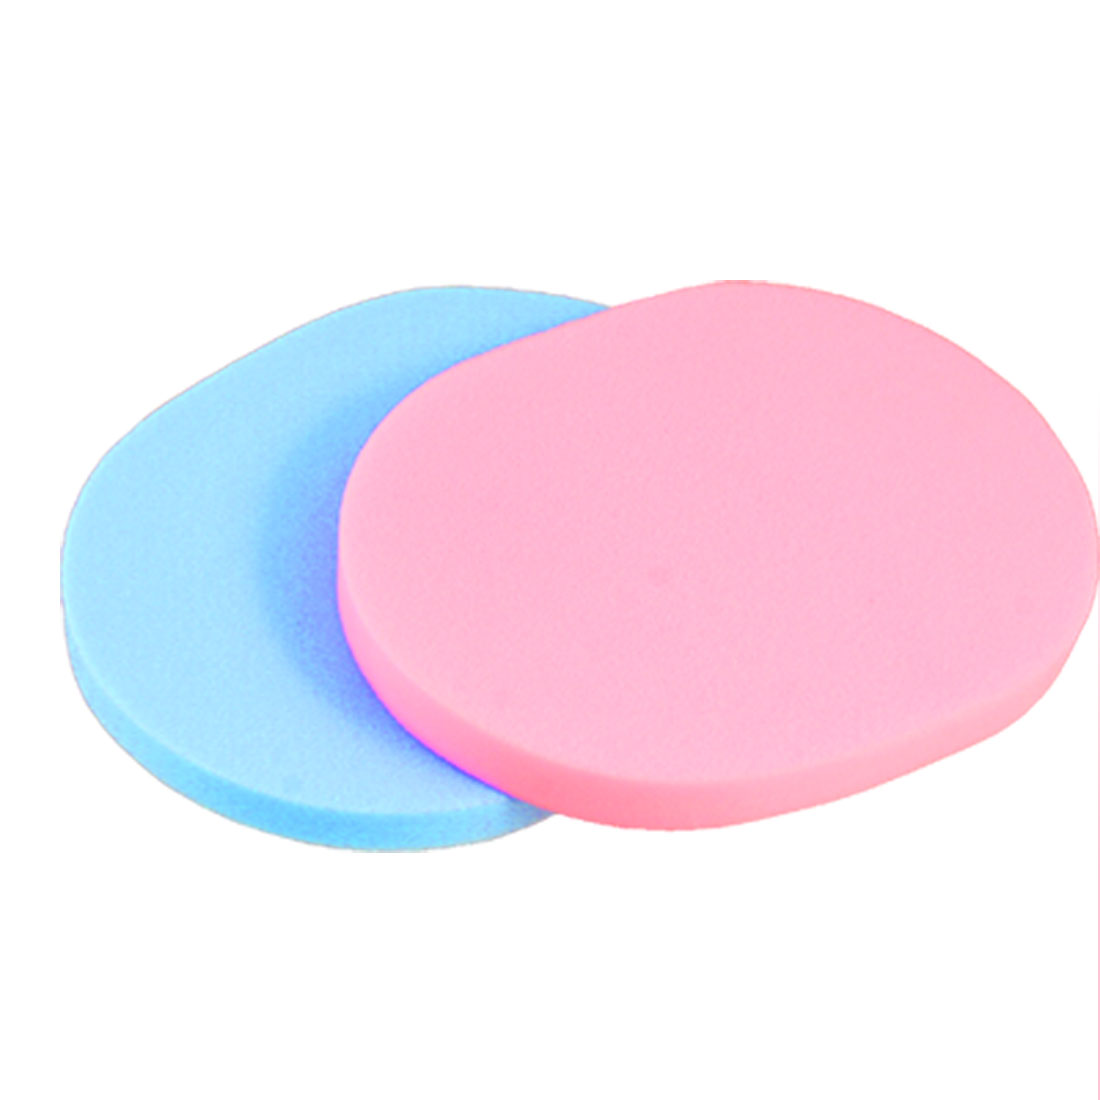 2 Pcs Blue Pink Makeup Oblong Sponge Powder Puff for Lady